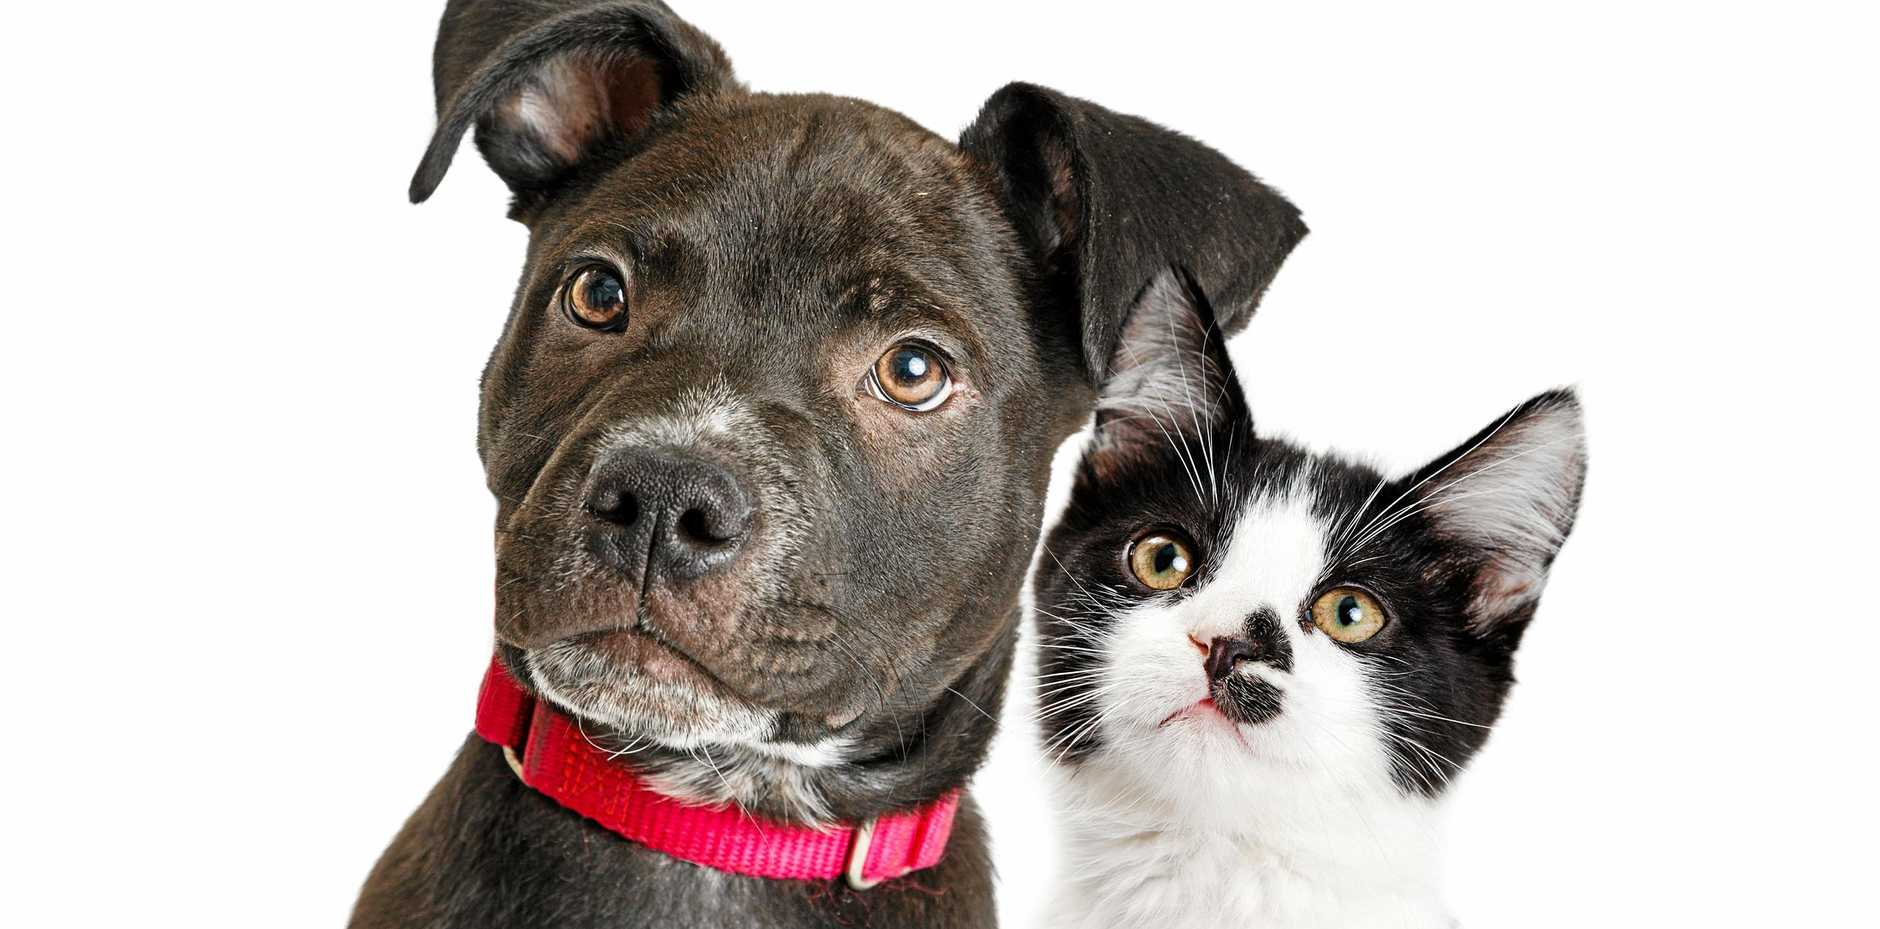 PETS: Four factors can increase lifespans through interaction with pets.